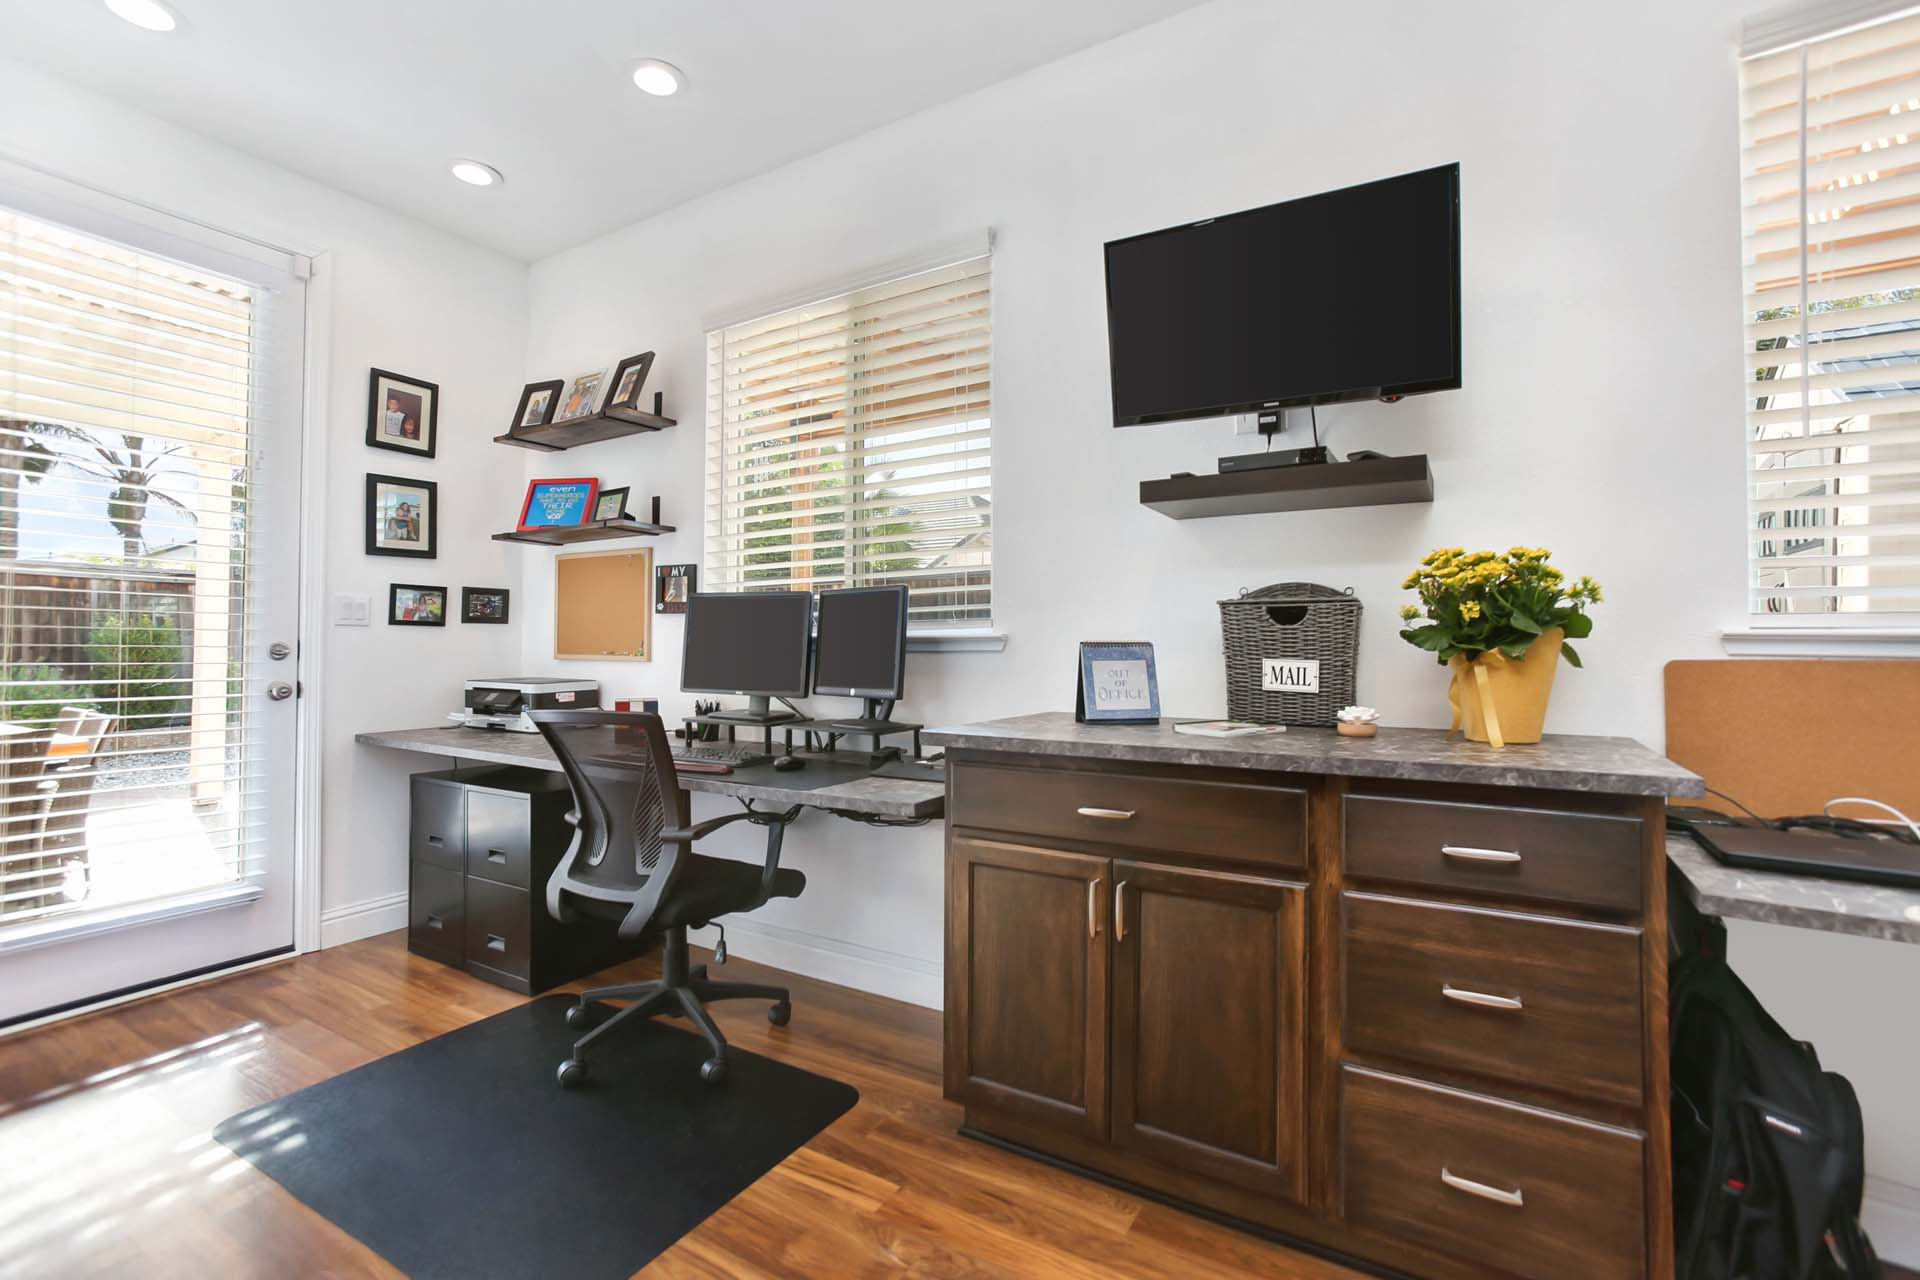 Working from home is comfortable and efficient with this home office addition.